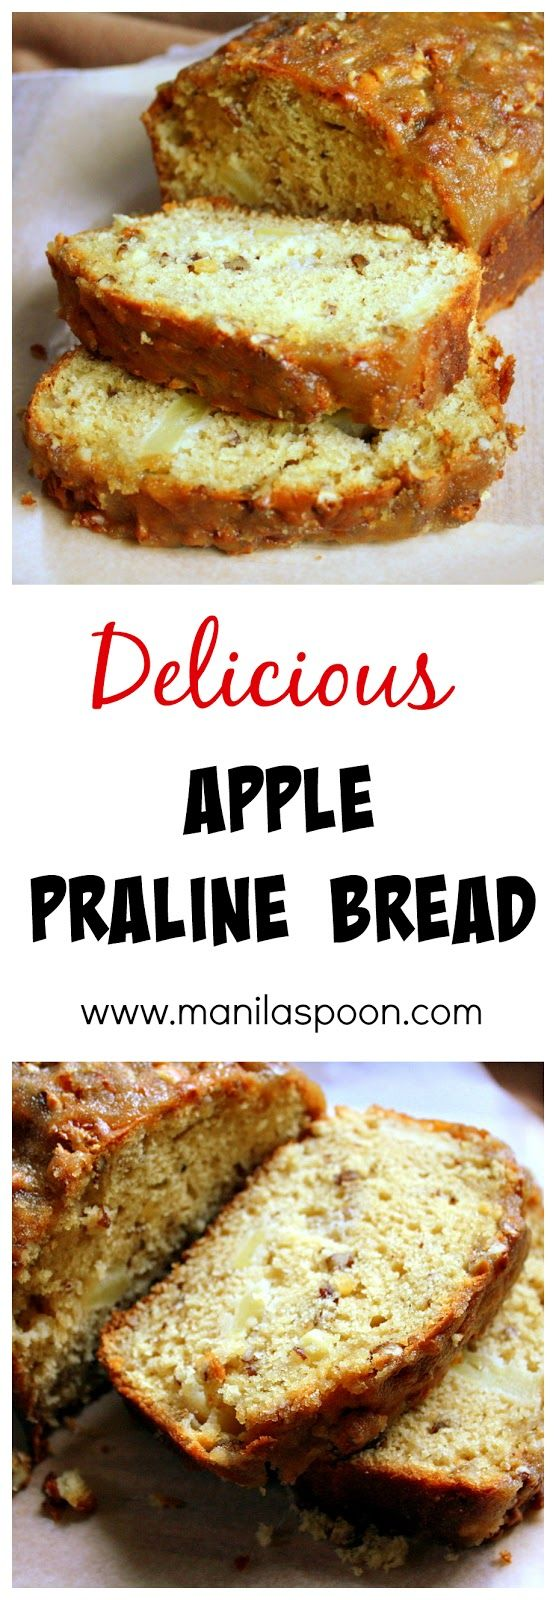 Apple Praline Bread - No Oil or Butter is used in the batter(butter IS used for topping)yet this bread is so moist and delicious!!! The crunchy praline topping brings this over the top! You must make this!